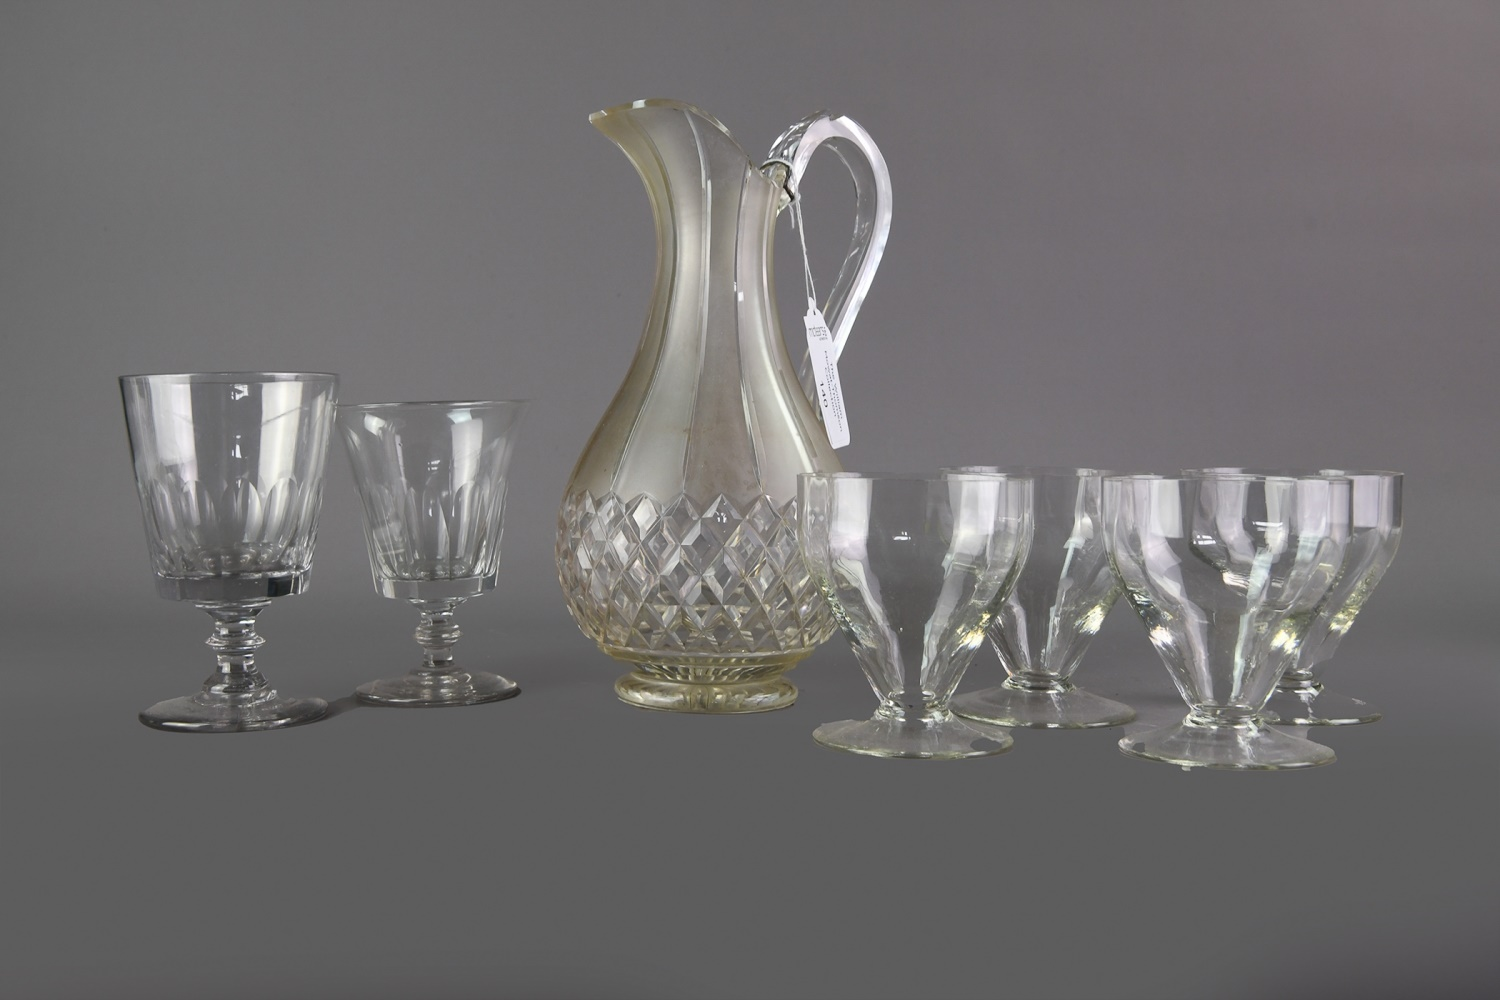 A COLLECTION OF SIX GLASS RUMMERS, ALONG WITH A JUG